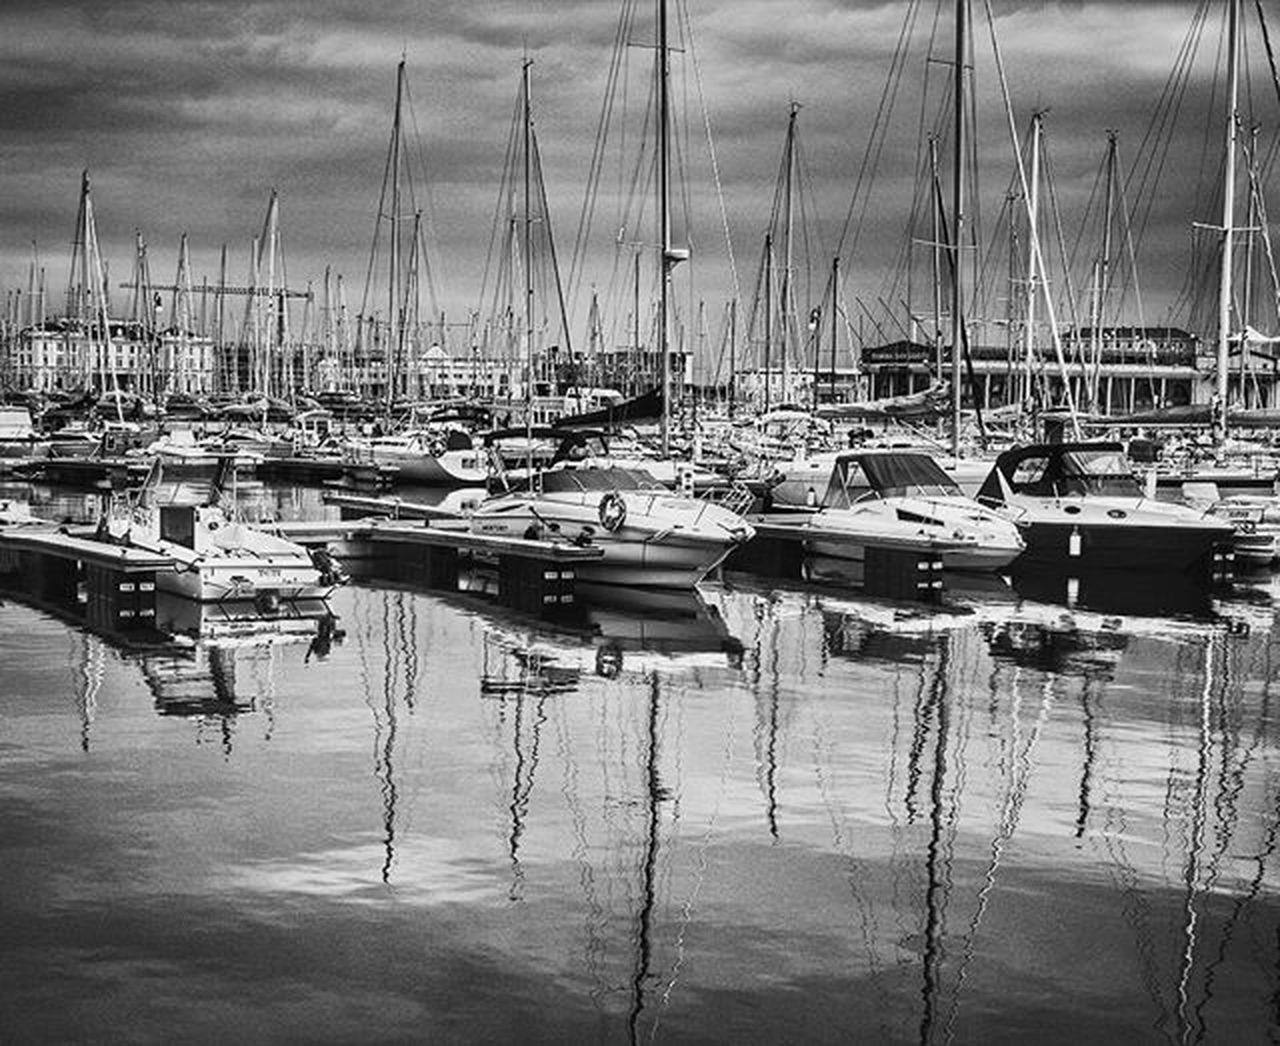 nautical vessel, moored, transportation, mode of transport, reflection, water, harbor, boat, no people, mast, day, large group of objects, outdoors, sailboat, marina, yacht, tranquility, sky, sea, nature